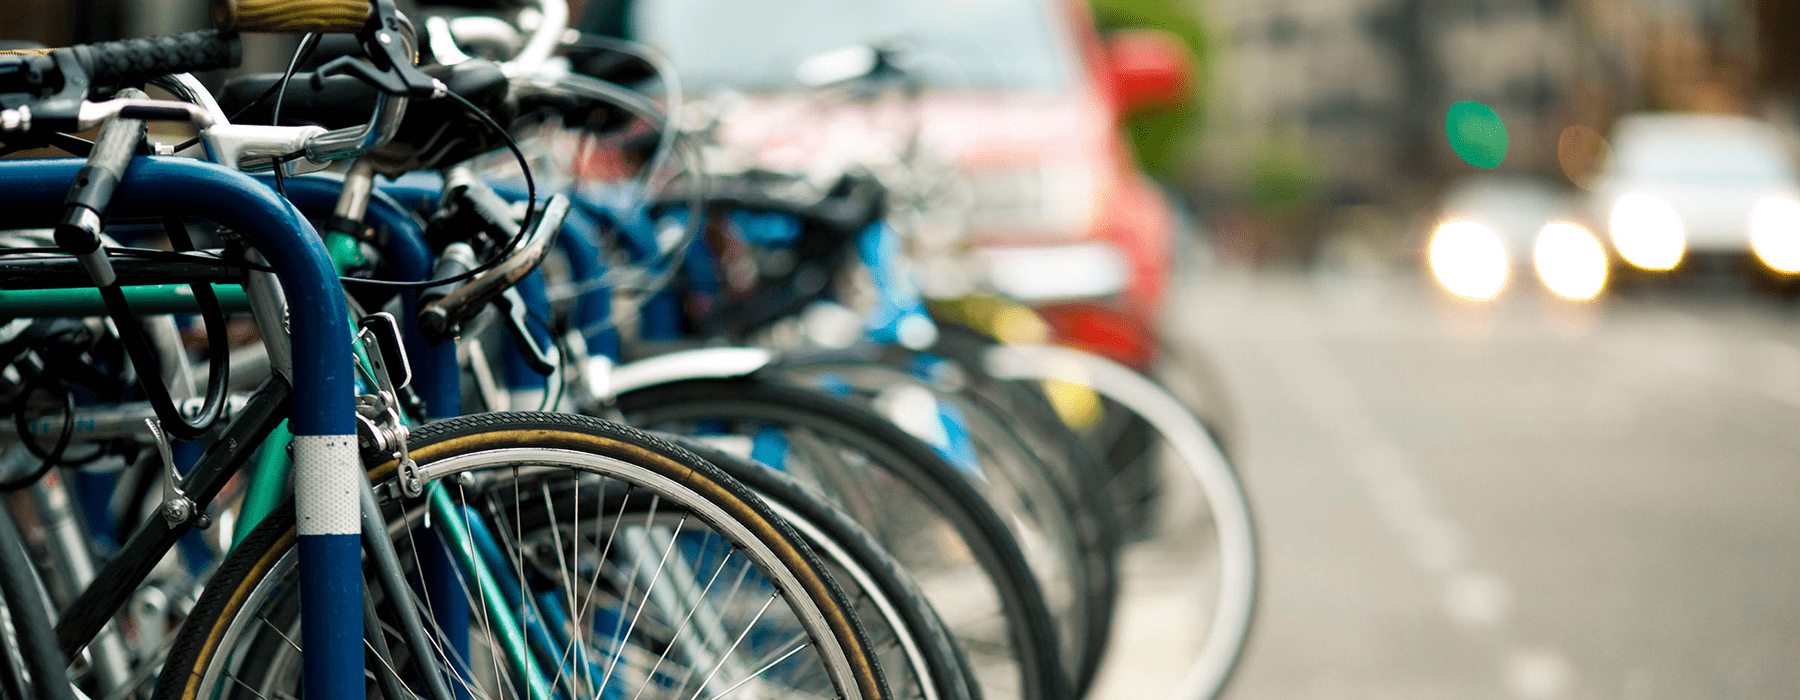 lifestyle image of a row of bicycles